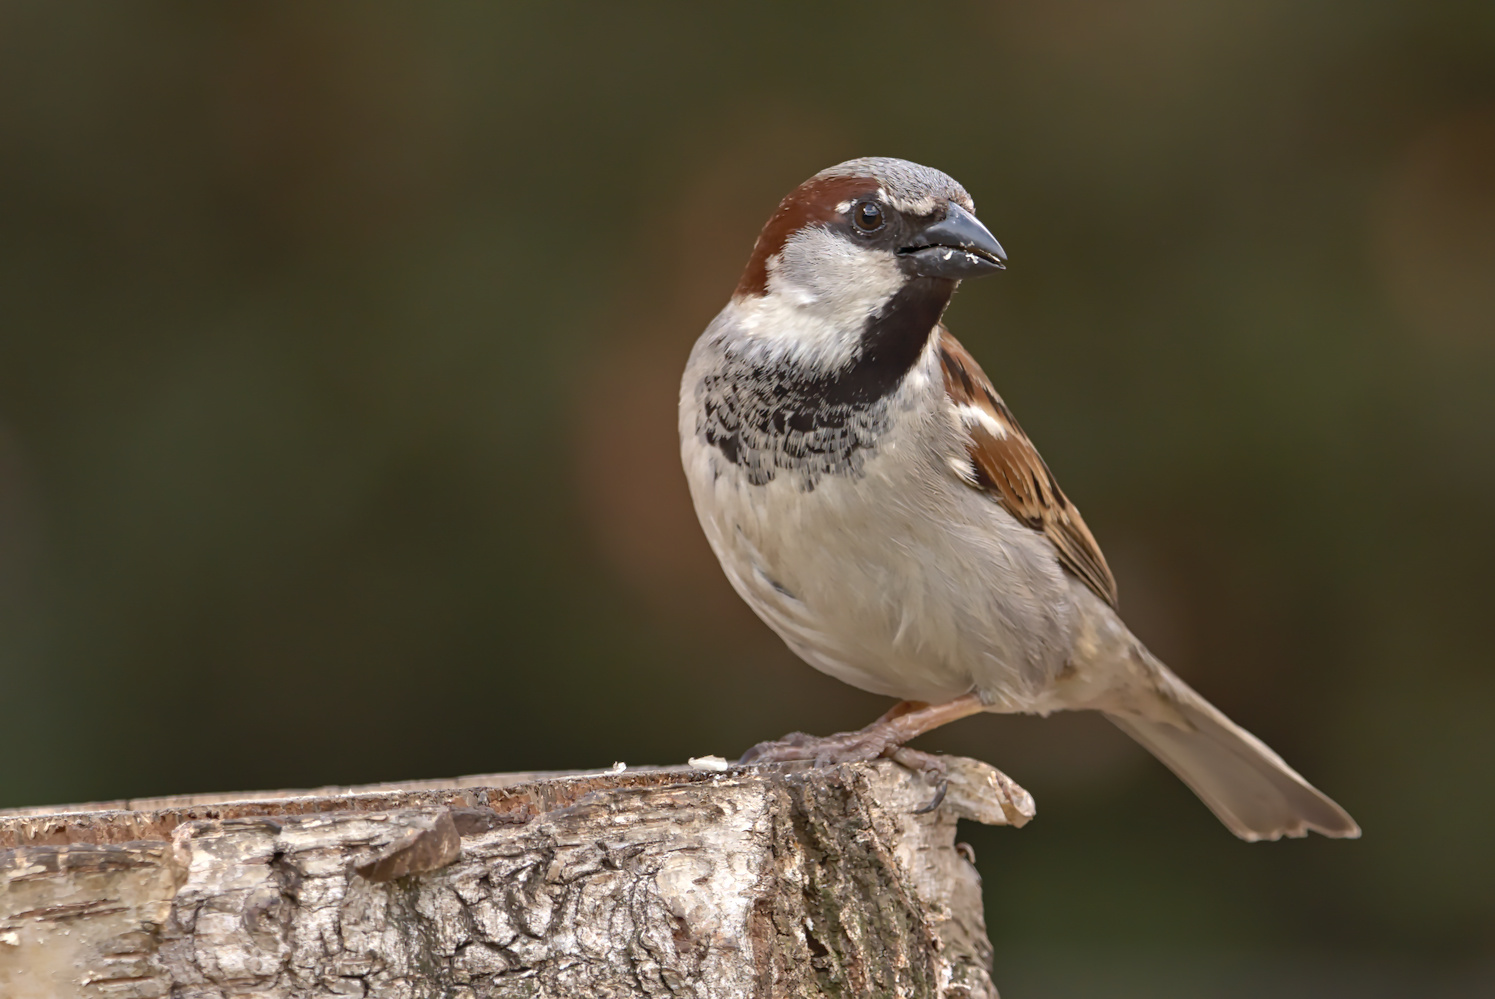 House sparrow (Passer domesticus) male by Lukasz J